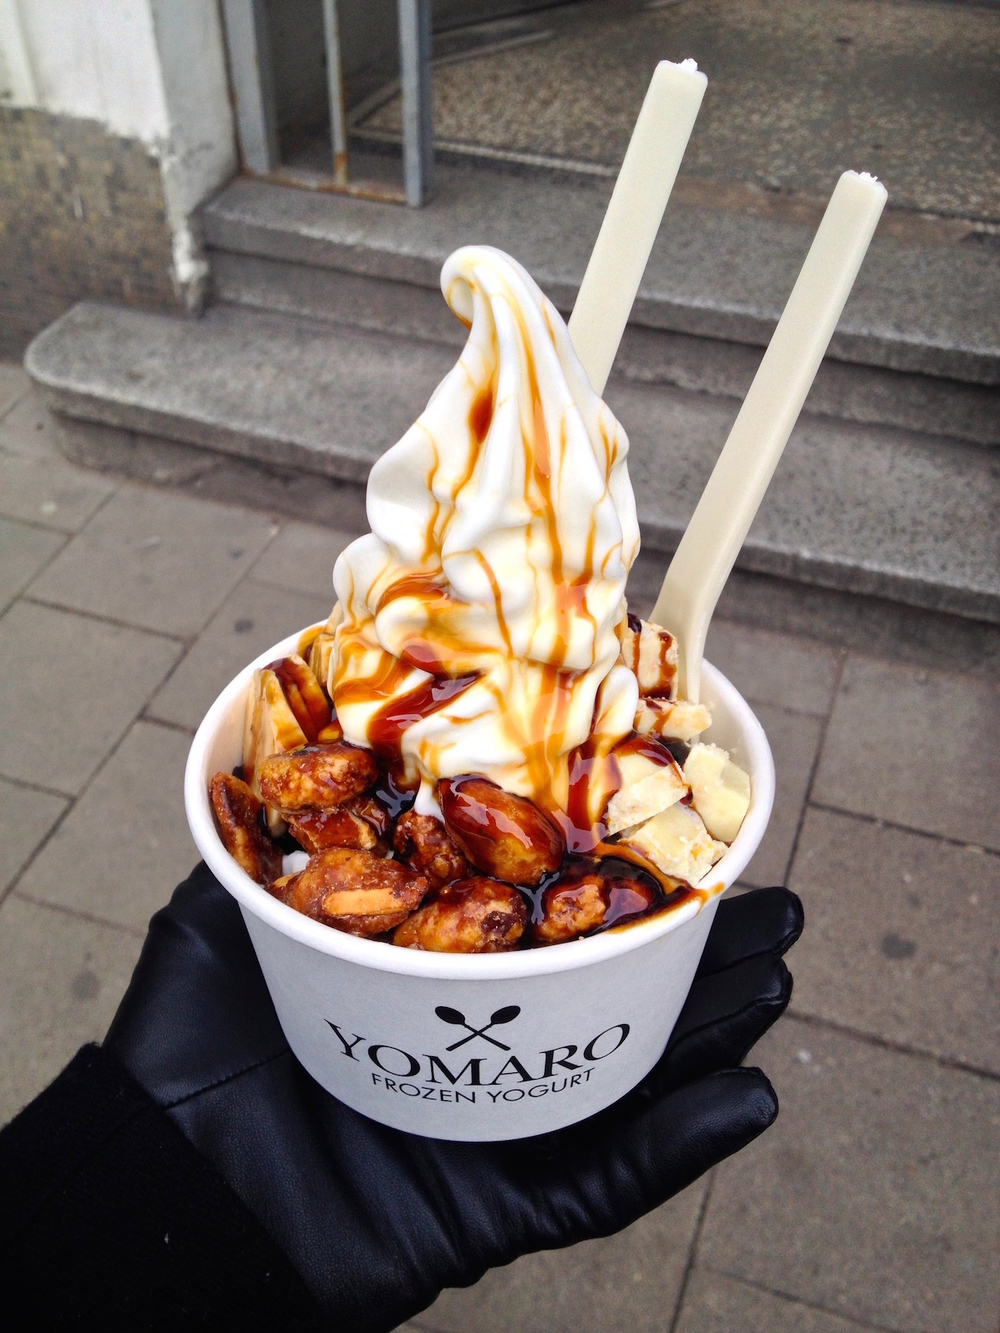 Medium frozen yogurt with white Ritter Sport coconut chips, banana slices, candied almonds, and caramel sauce